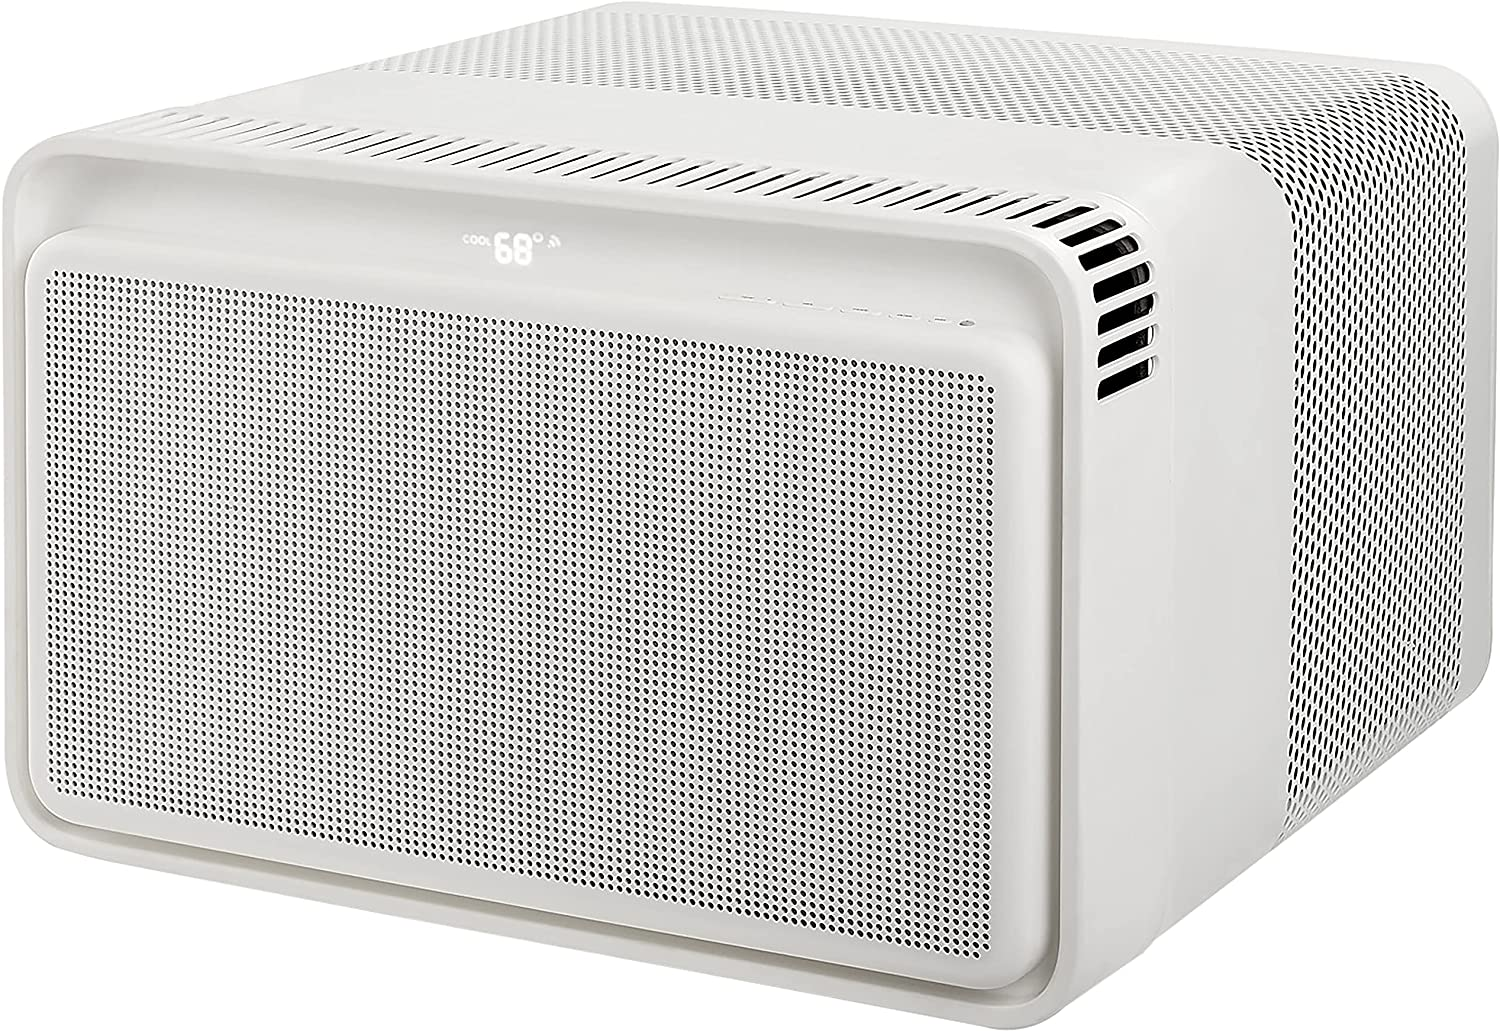 Windmill Air Conditioner: Smart Home AC - Easy to Install - Quiet - Energy Efficient - Side Insulation - Auto-Dimming LED Display - App and Voice-Enabled - 8,300 BTU